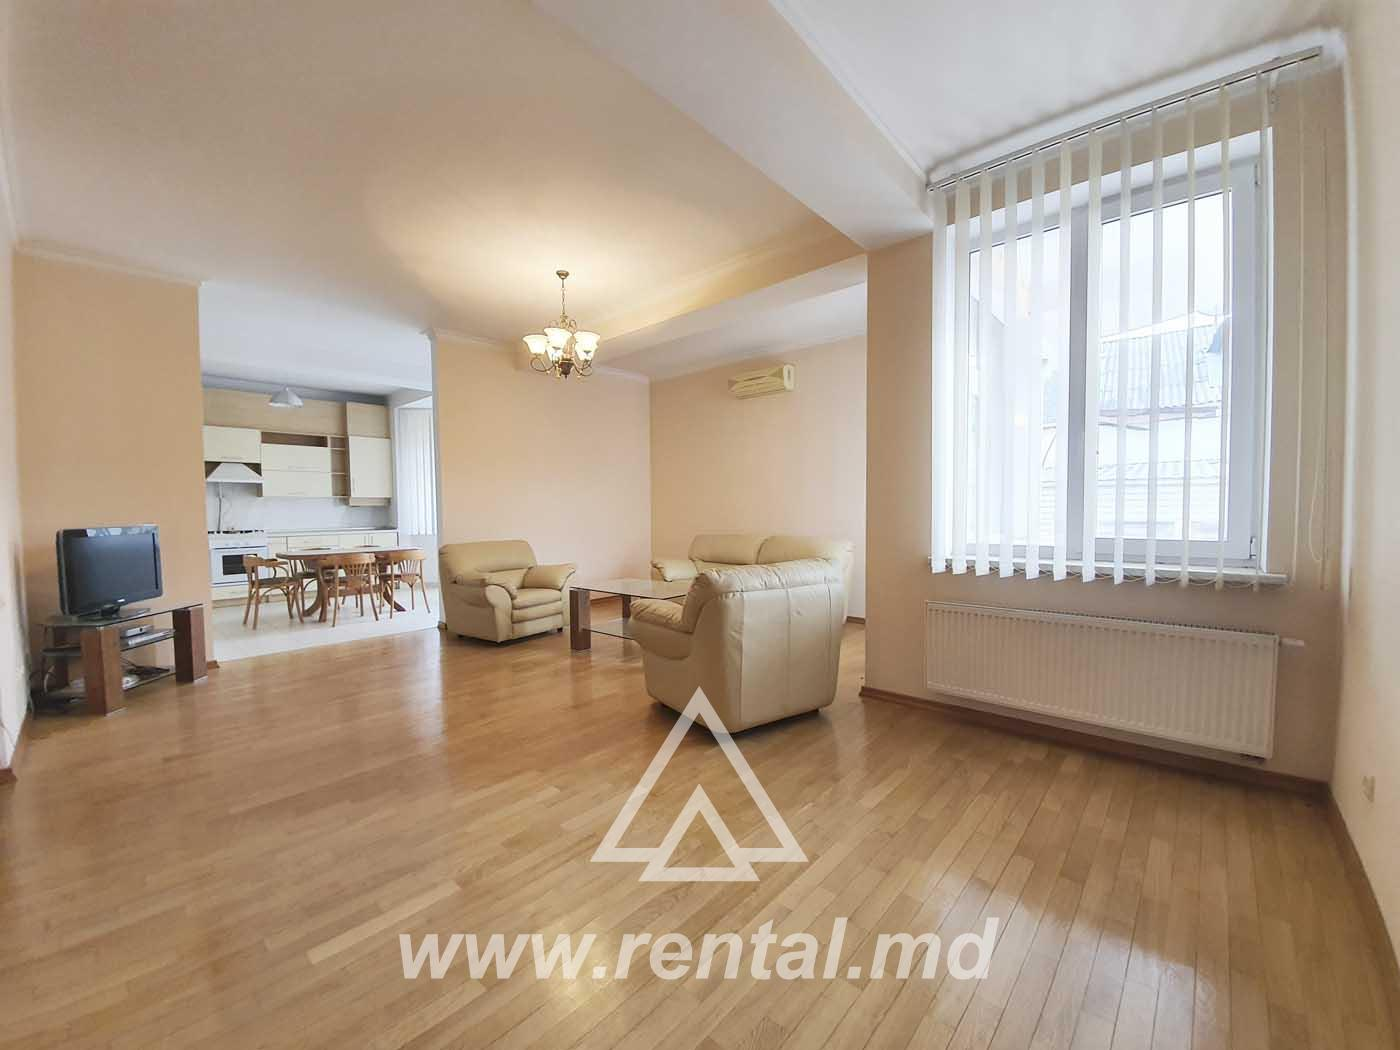 Rental apartment in a new block of flats near Central Park